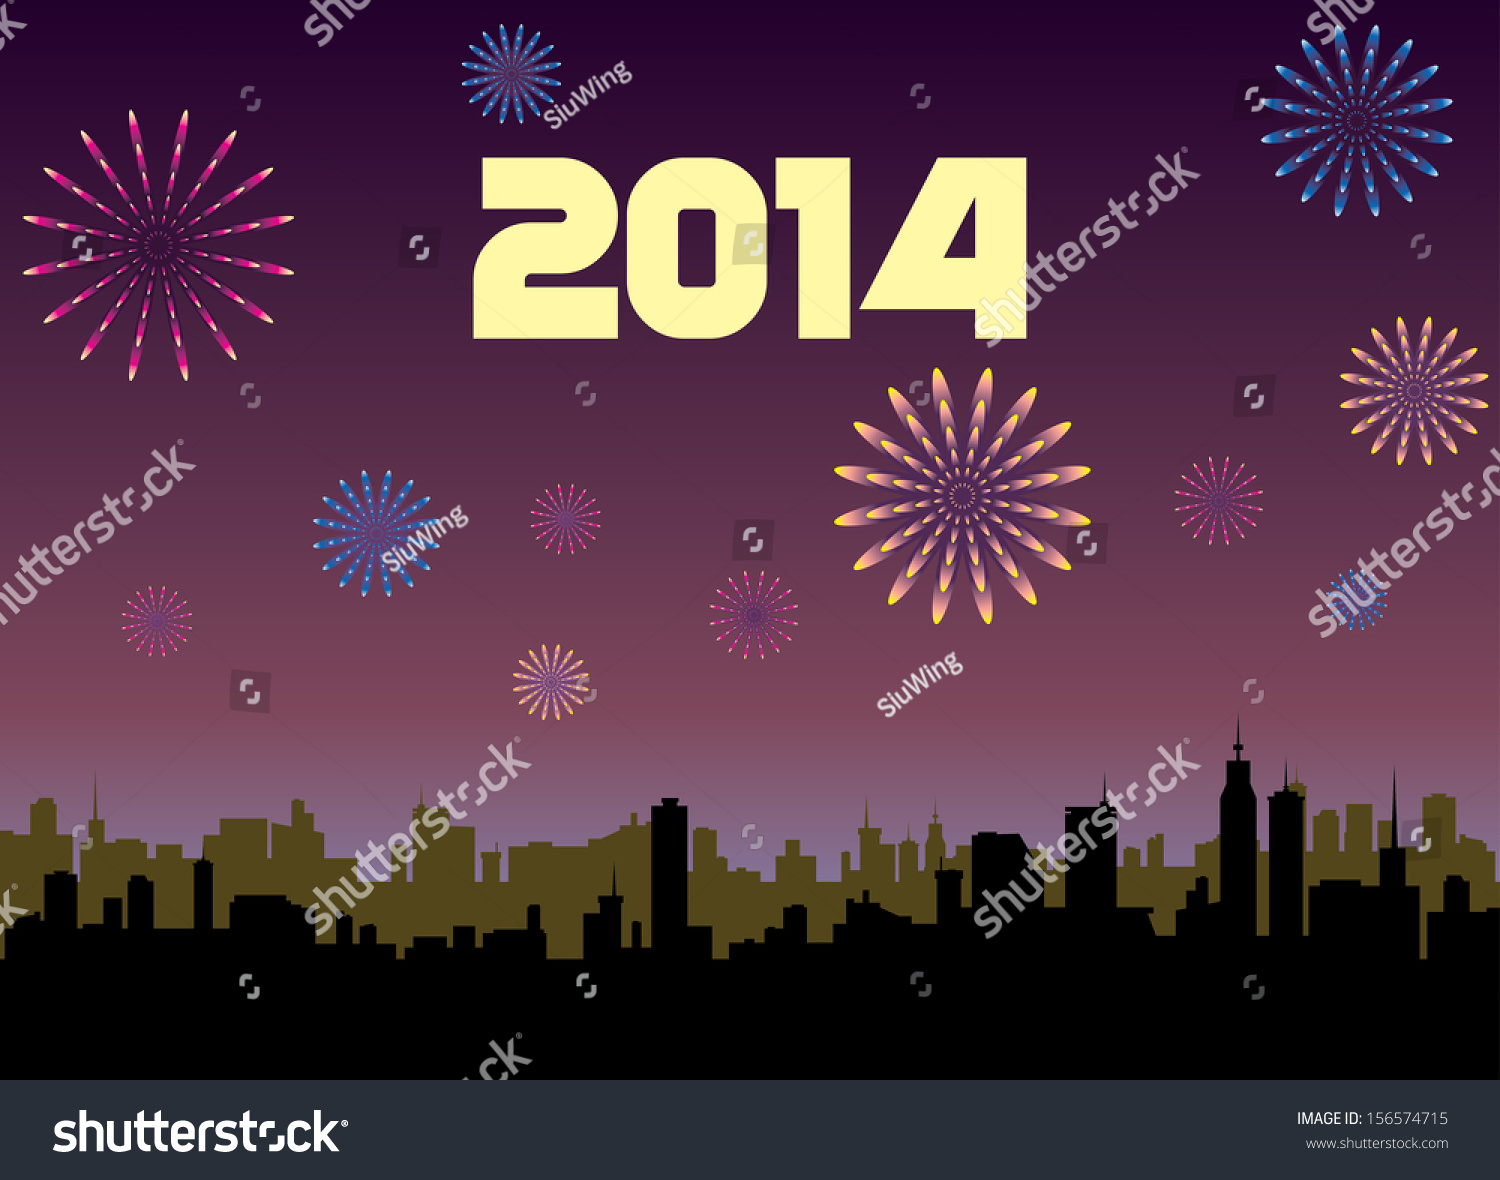 Happy new year 2014 greeting card stock vector 156574715 shutterstock happy new year 2014 greeting card m4hsunfo